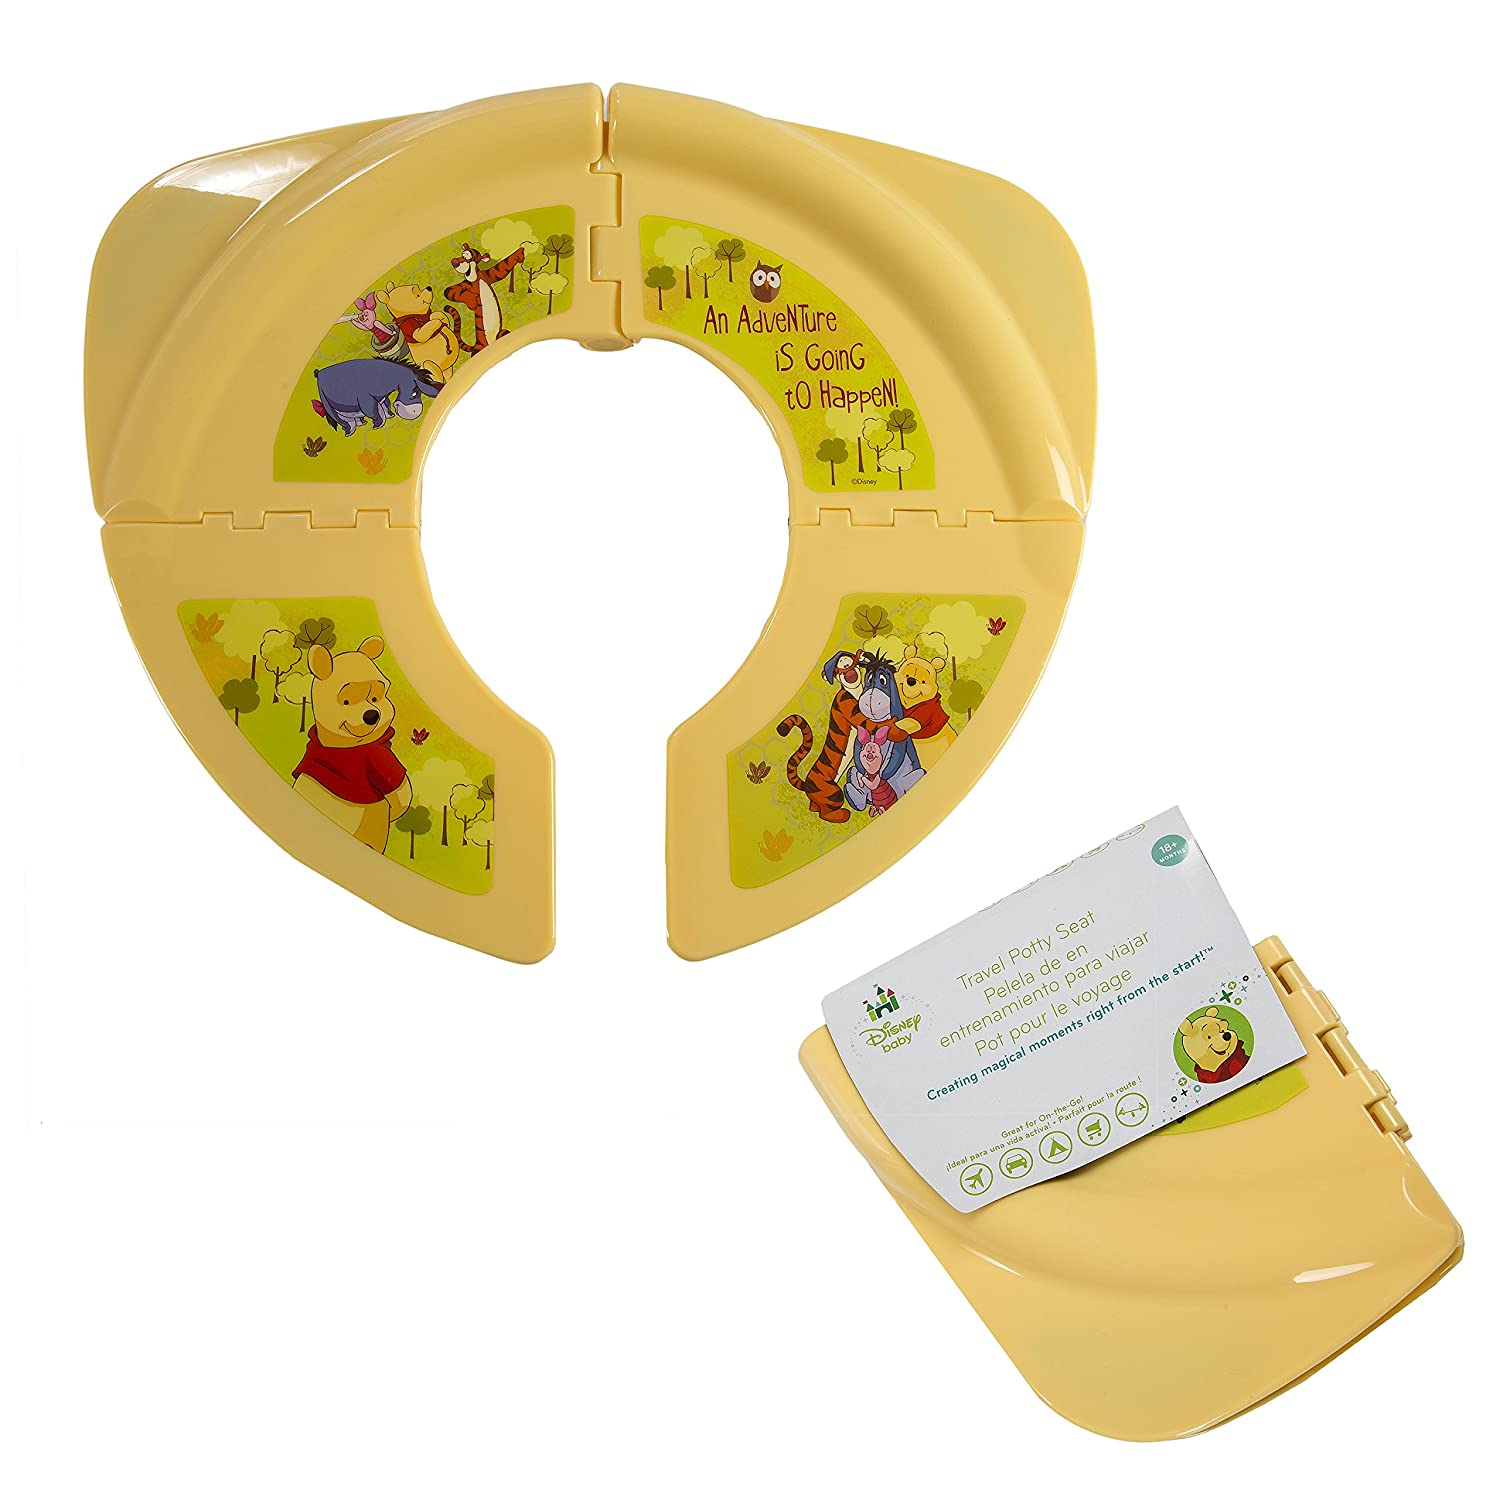 Amazon.com : Disney Winnie-the-Pooh Folding Potty Seat - For Standard Toilets - Regular For Home or Travel Use - 18 Plus Months - Yellow - Comes With ...